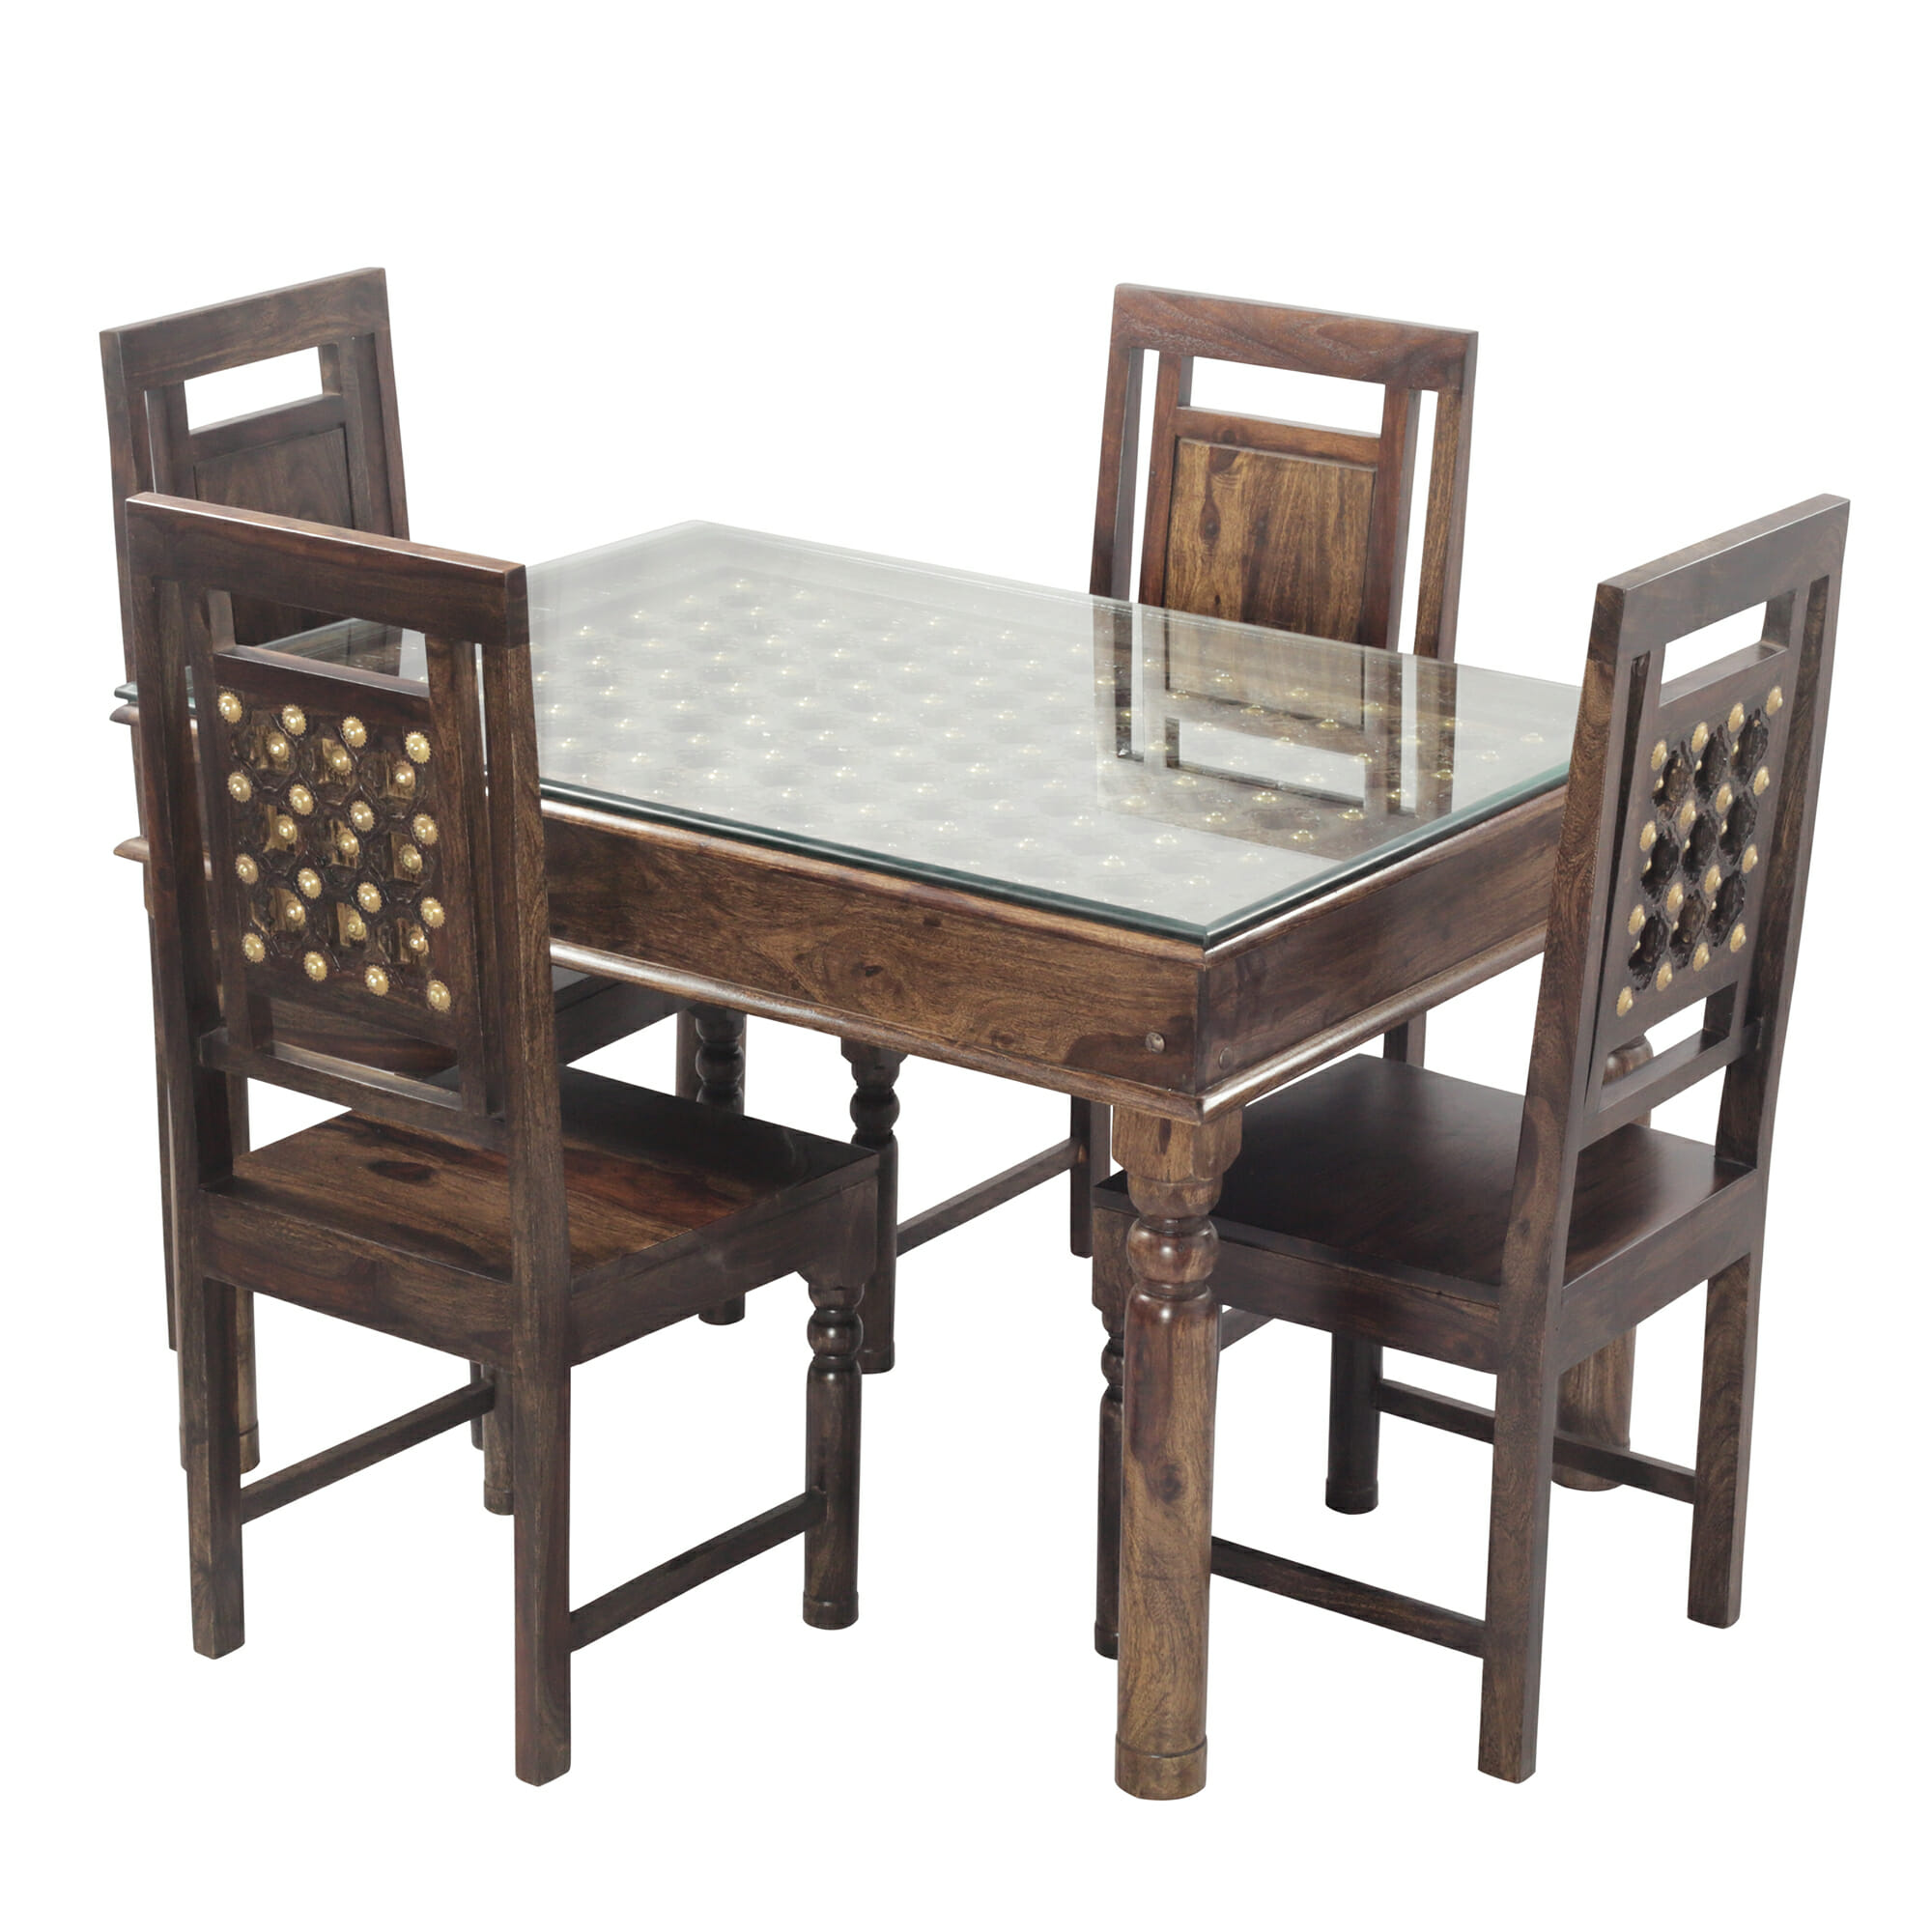 Bodhi Solid Wood 4 Seater Dining Set In Provincial Teak